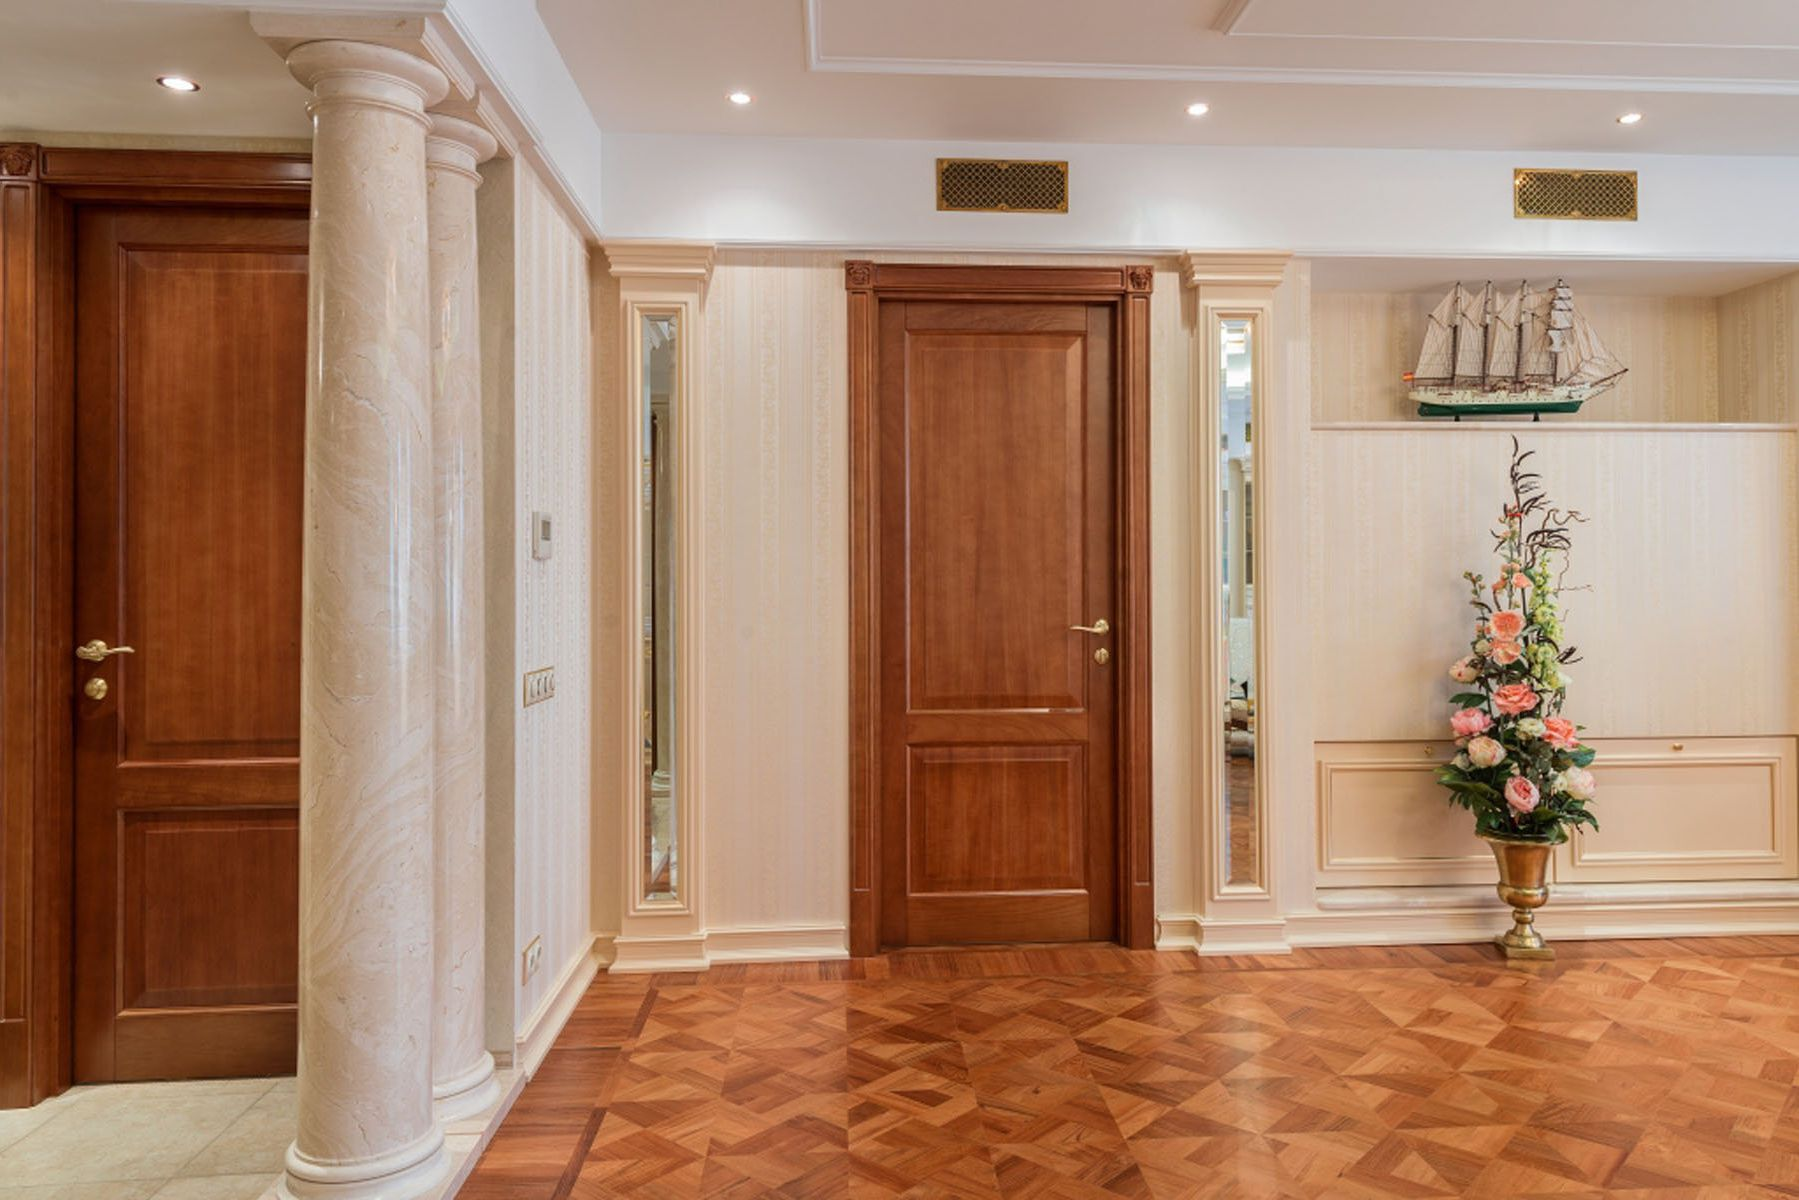 The massive door of solid wood in a classic room design